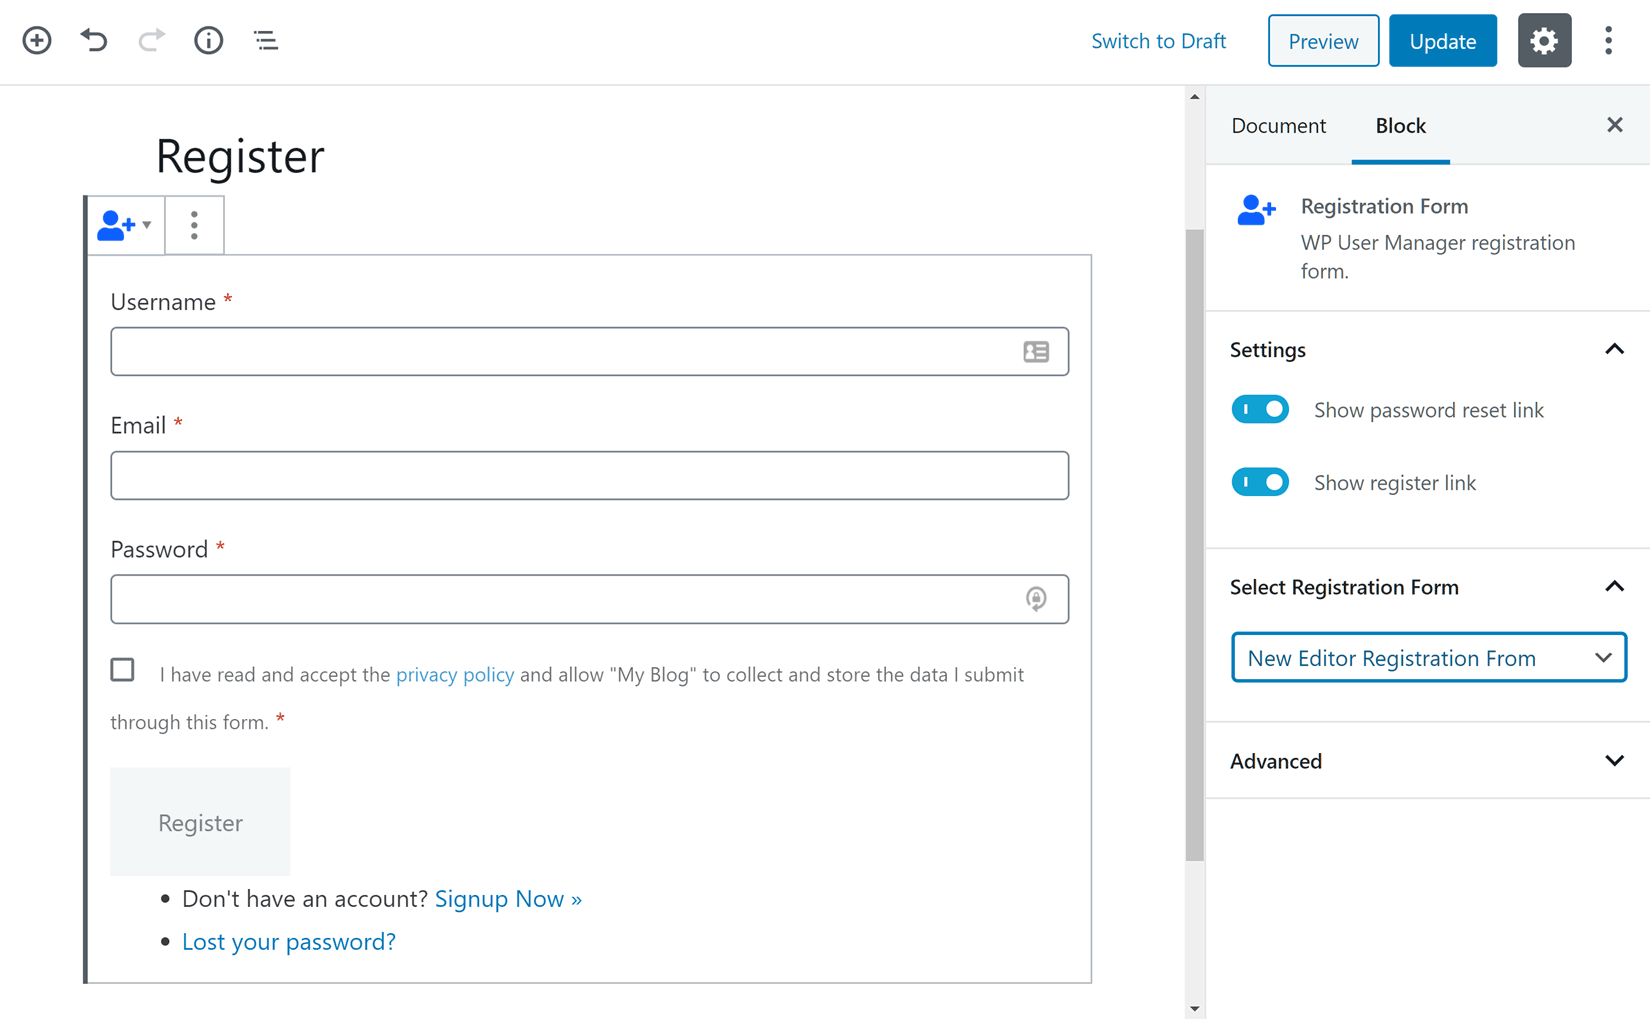 Registration Form Page Settings